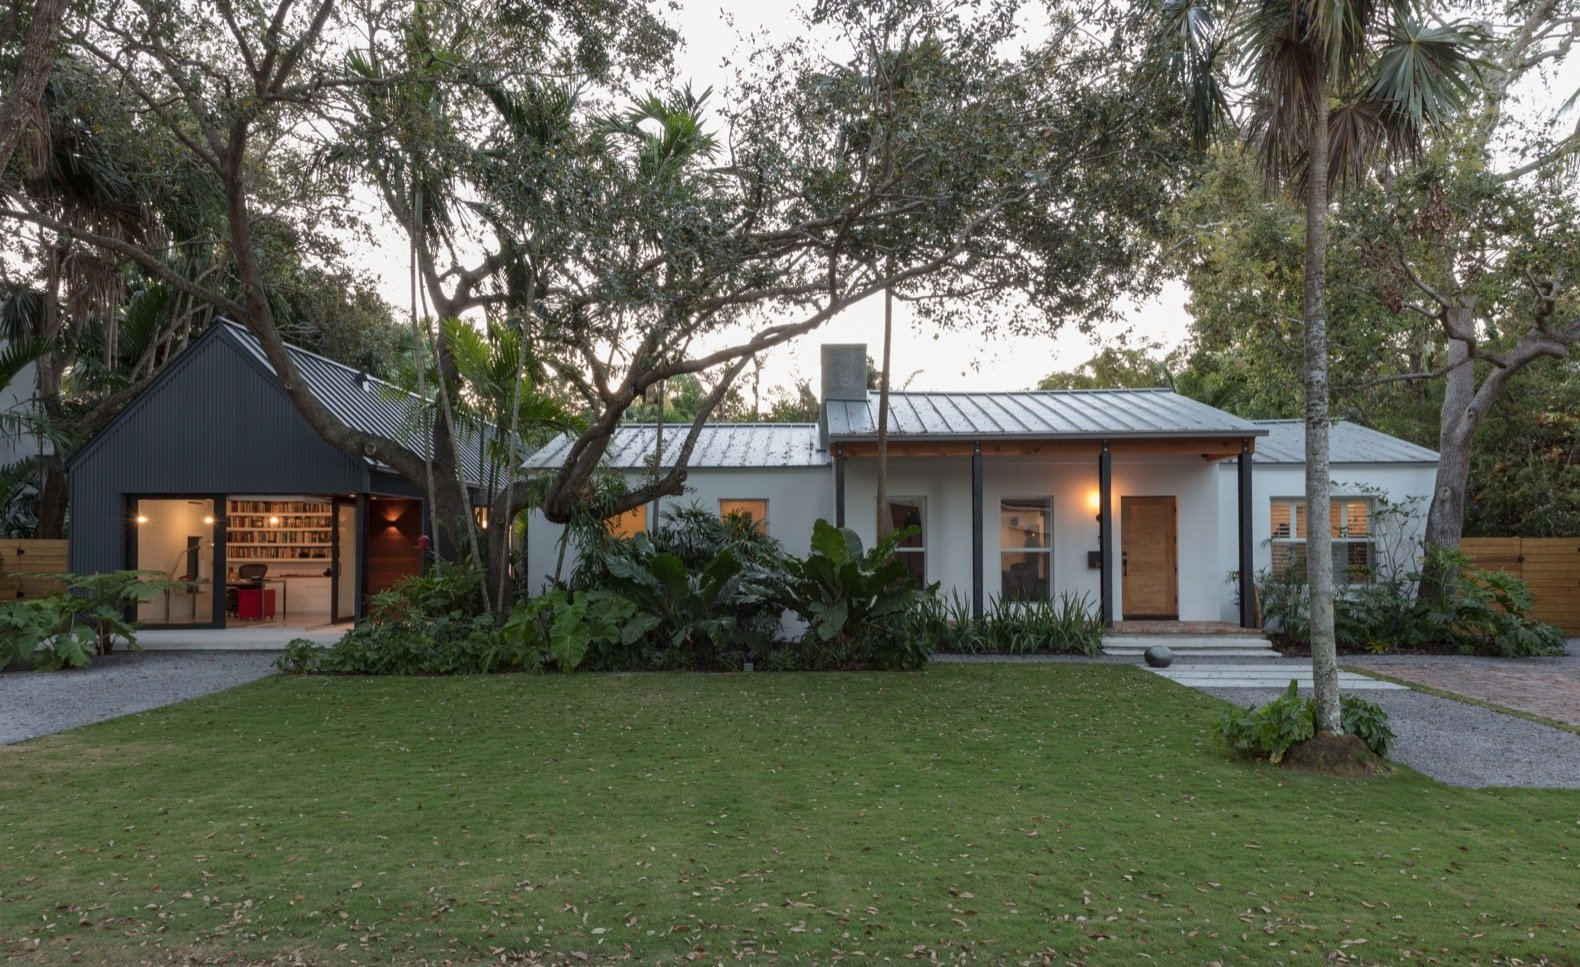 Exterior, Metal Siding Material, Metal Roof Material, House Building Type, and Gable RoofLine The dark and gabled addition offers sharp contrast against the low-lying white-painted bungalow. Elements such as the steel pillars were repeated in both structures for continuity.    Photo 3 of 21 in A Minimalist Bungalow in Miami Welcomes a Sleek New Addition